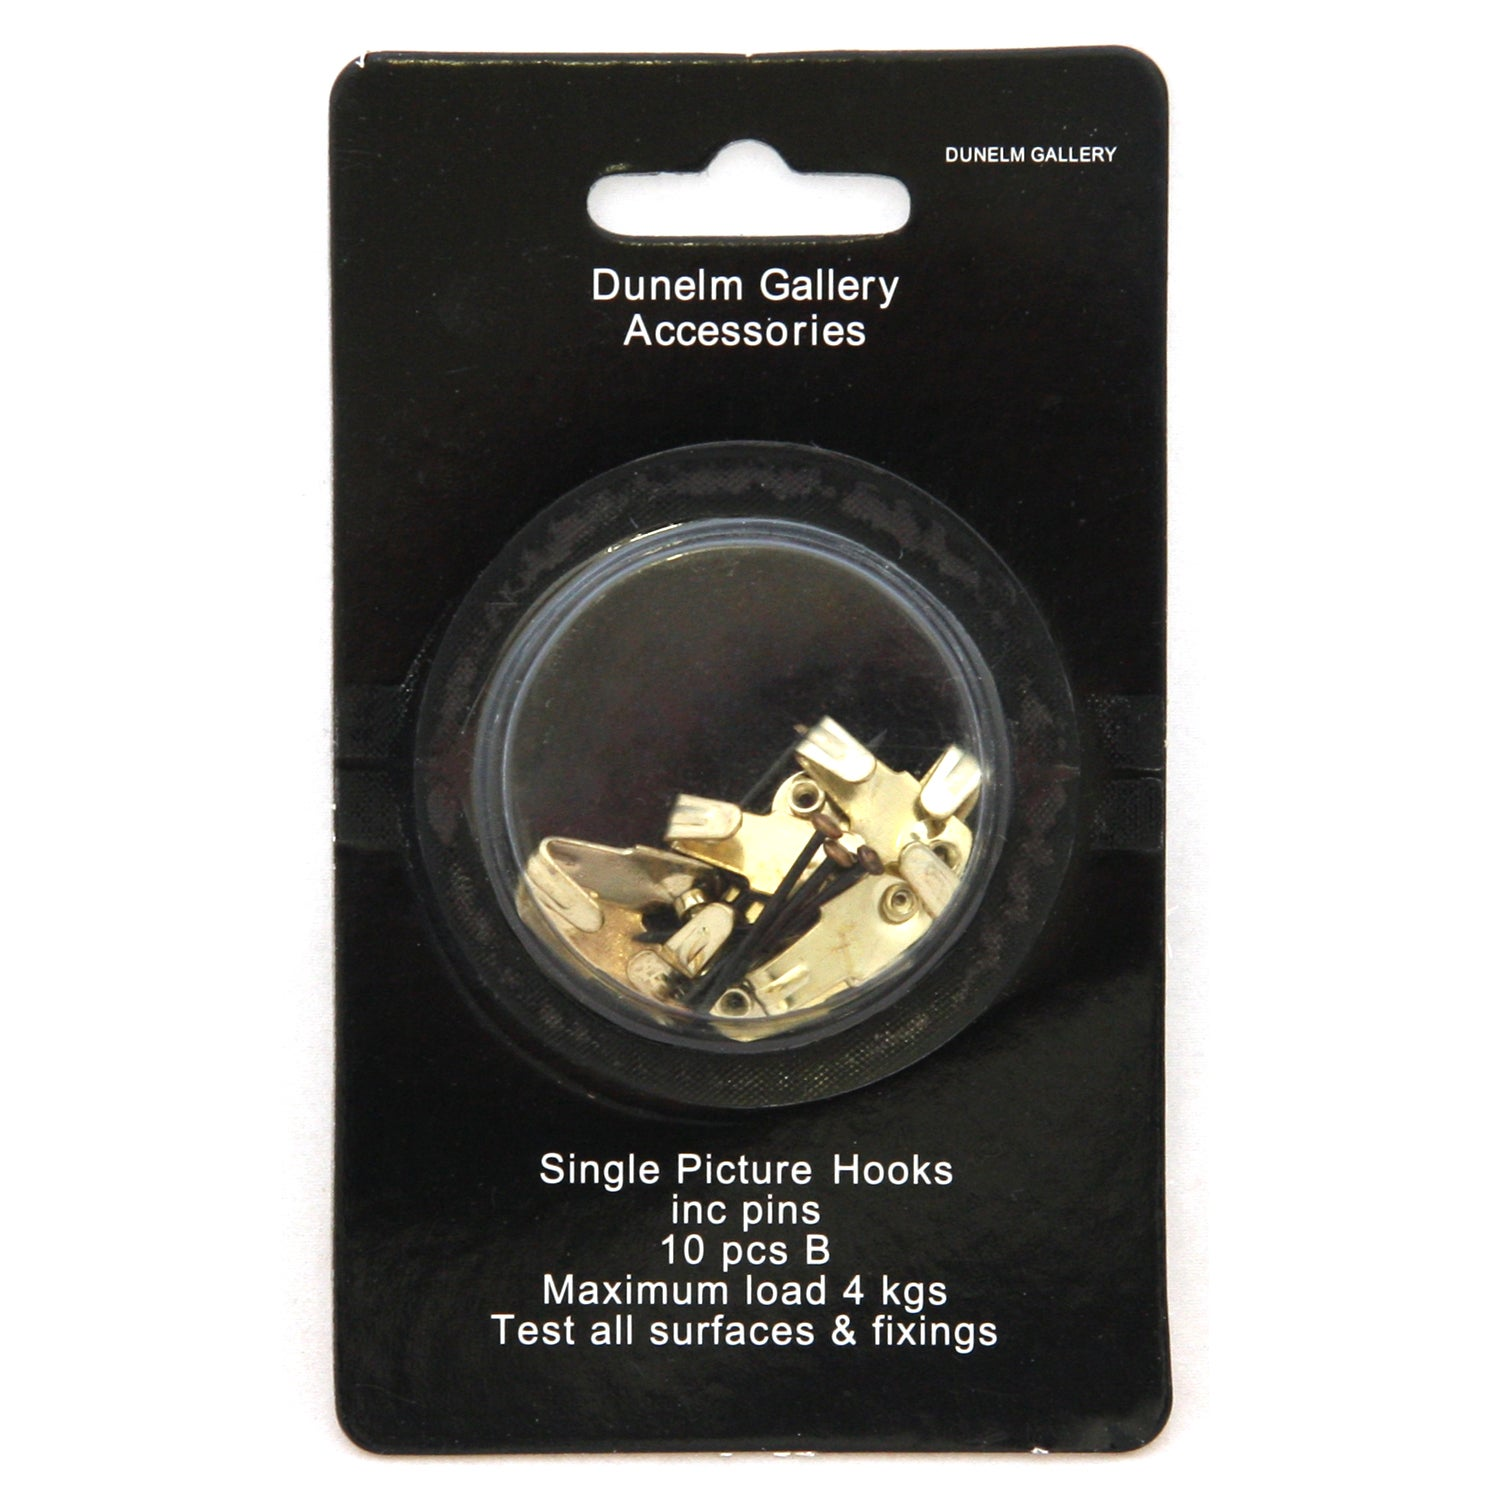 Pack of 10 Single Picture Hooks